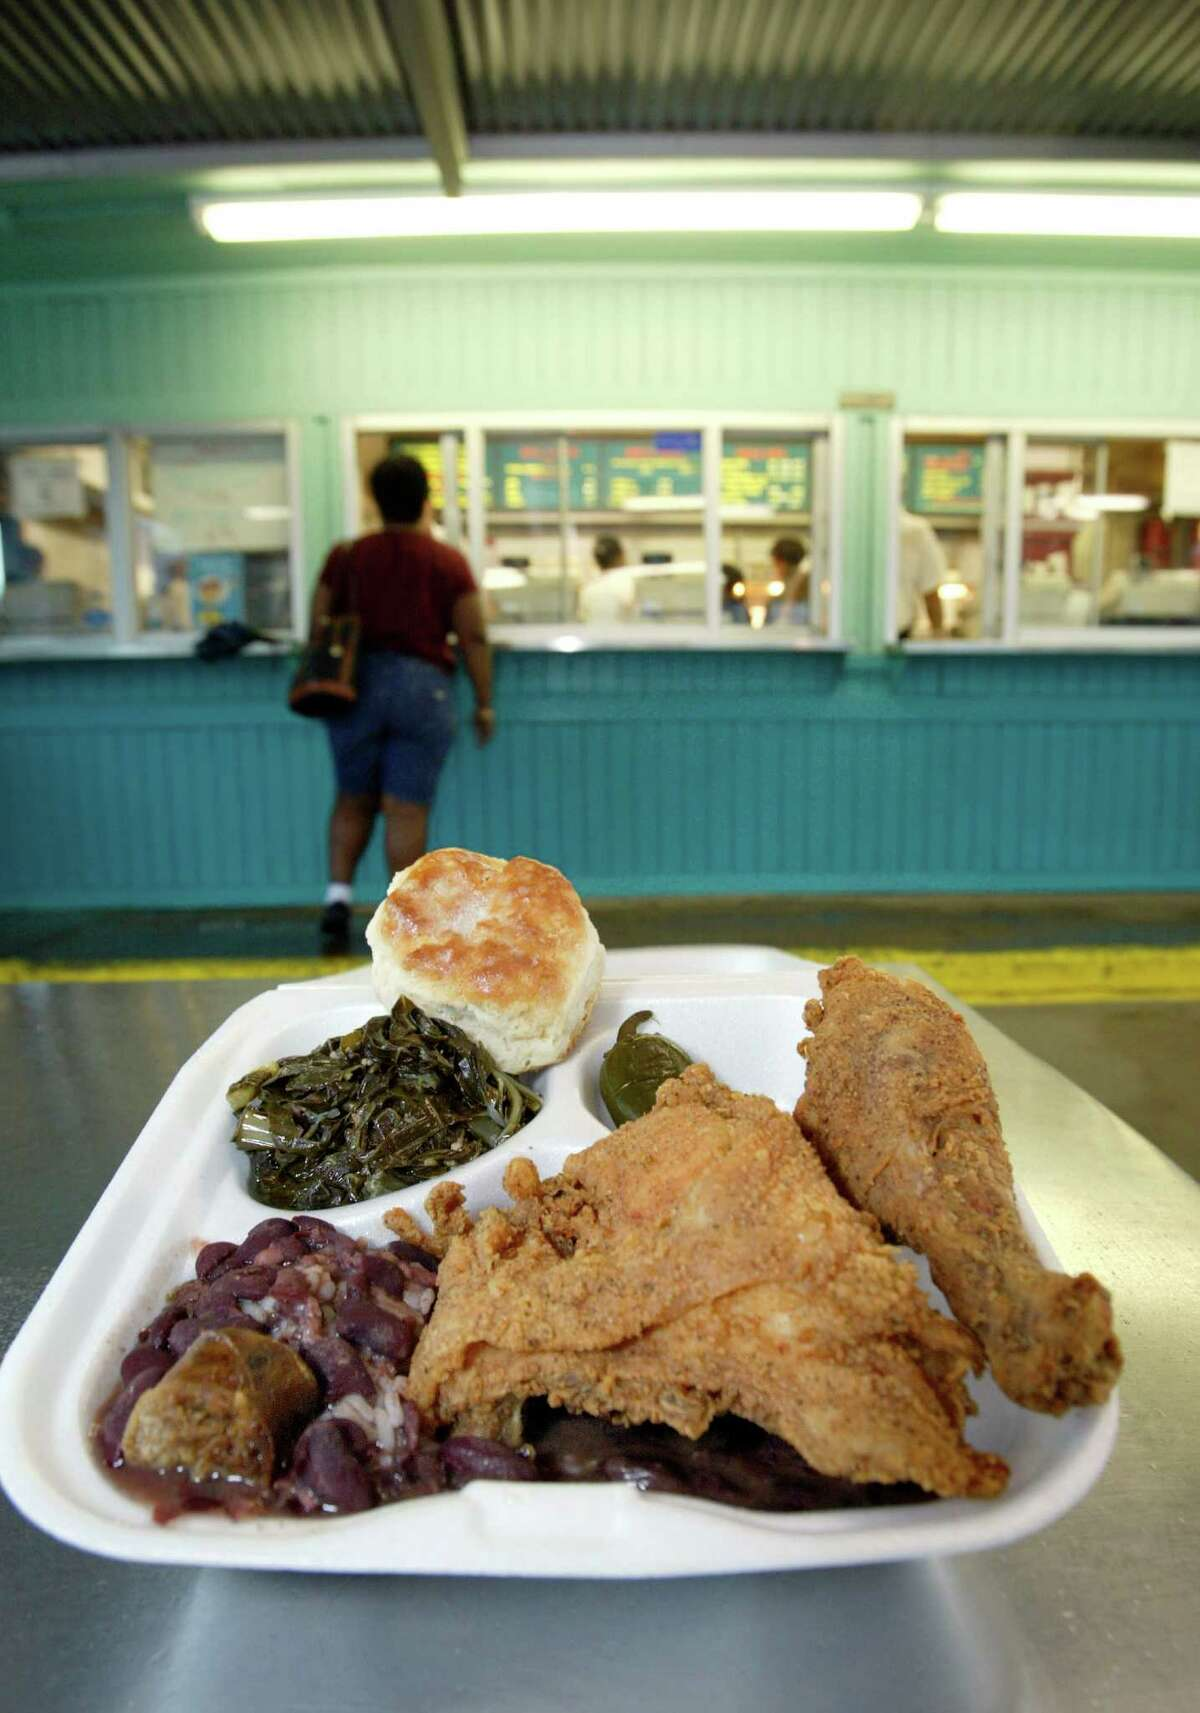 Frenchy's is just one of the cost-friendly restaurant on Alison Cook's Top 100 list.